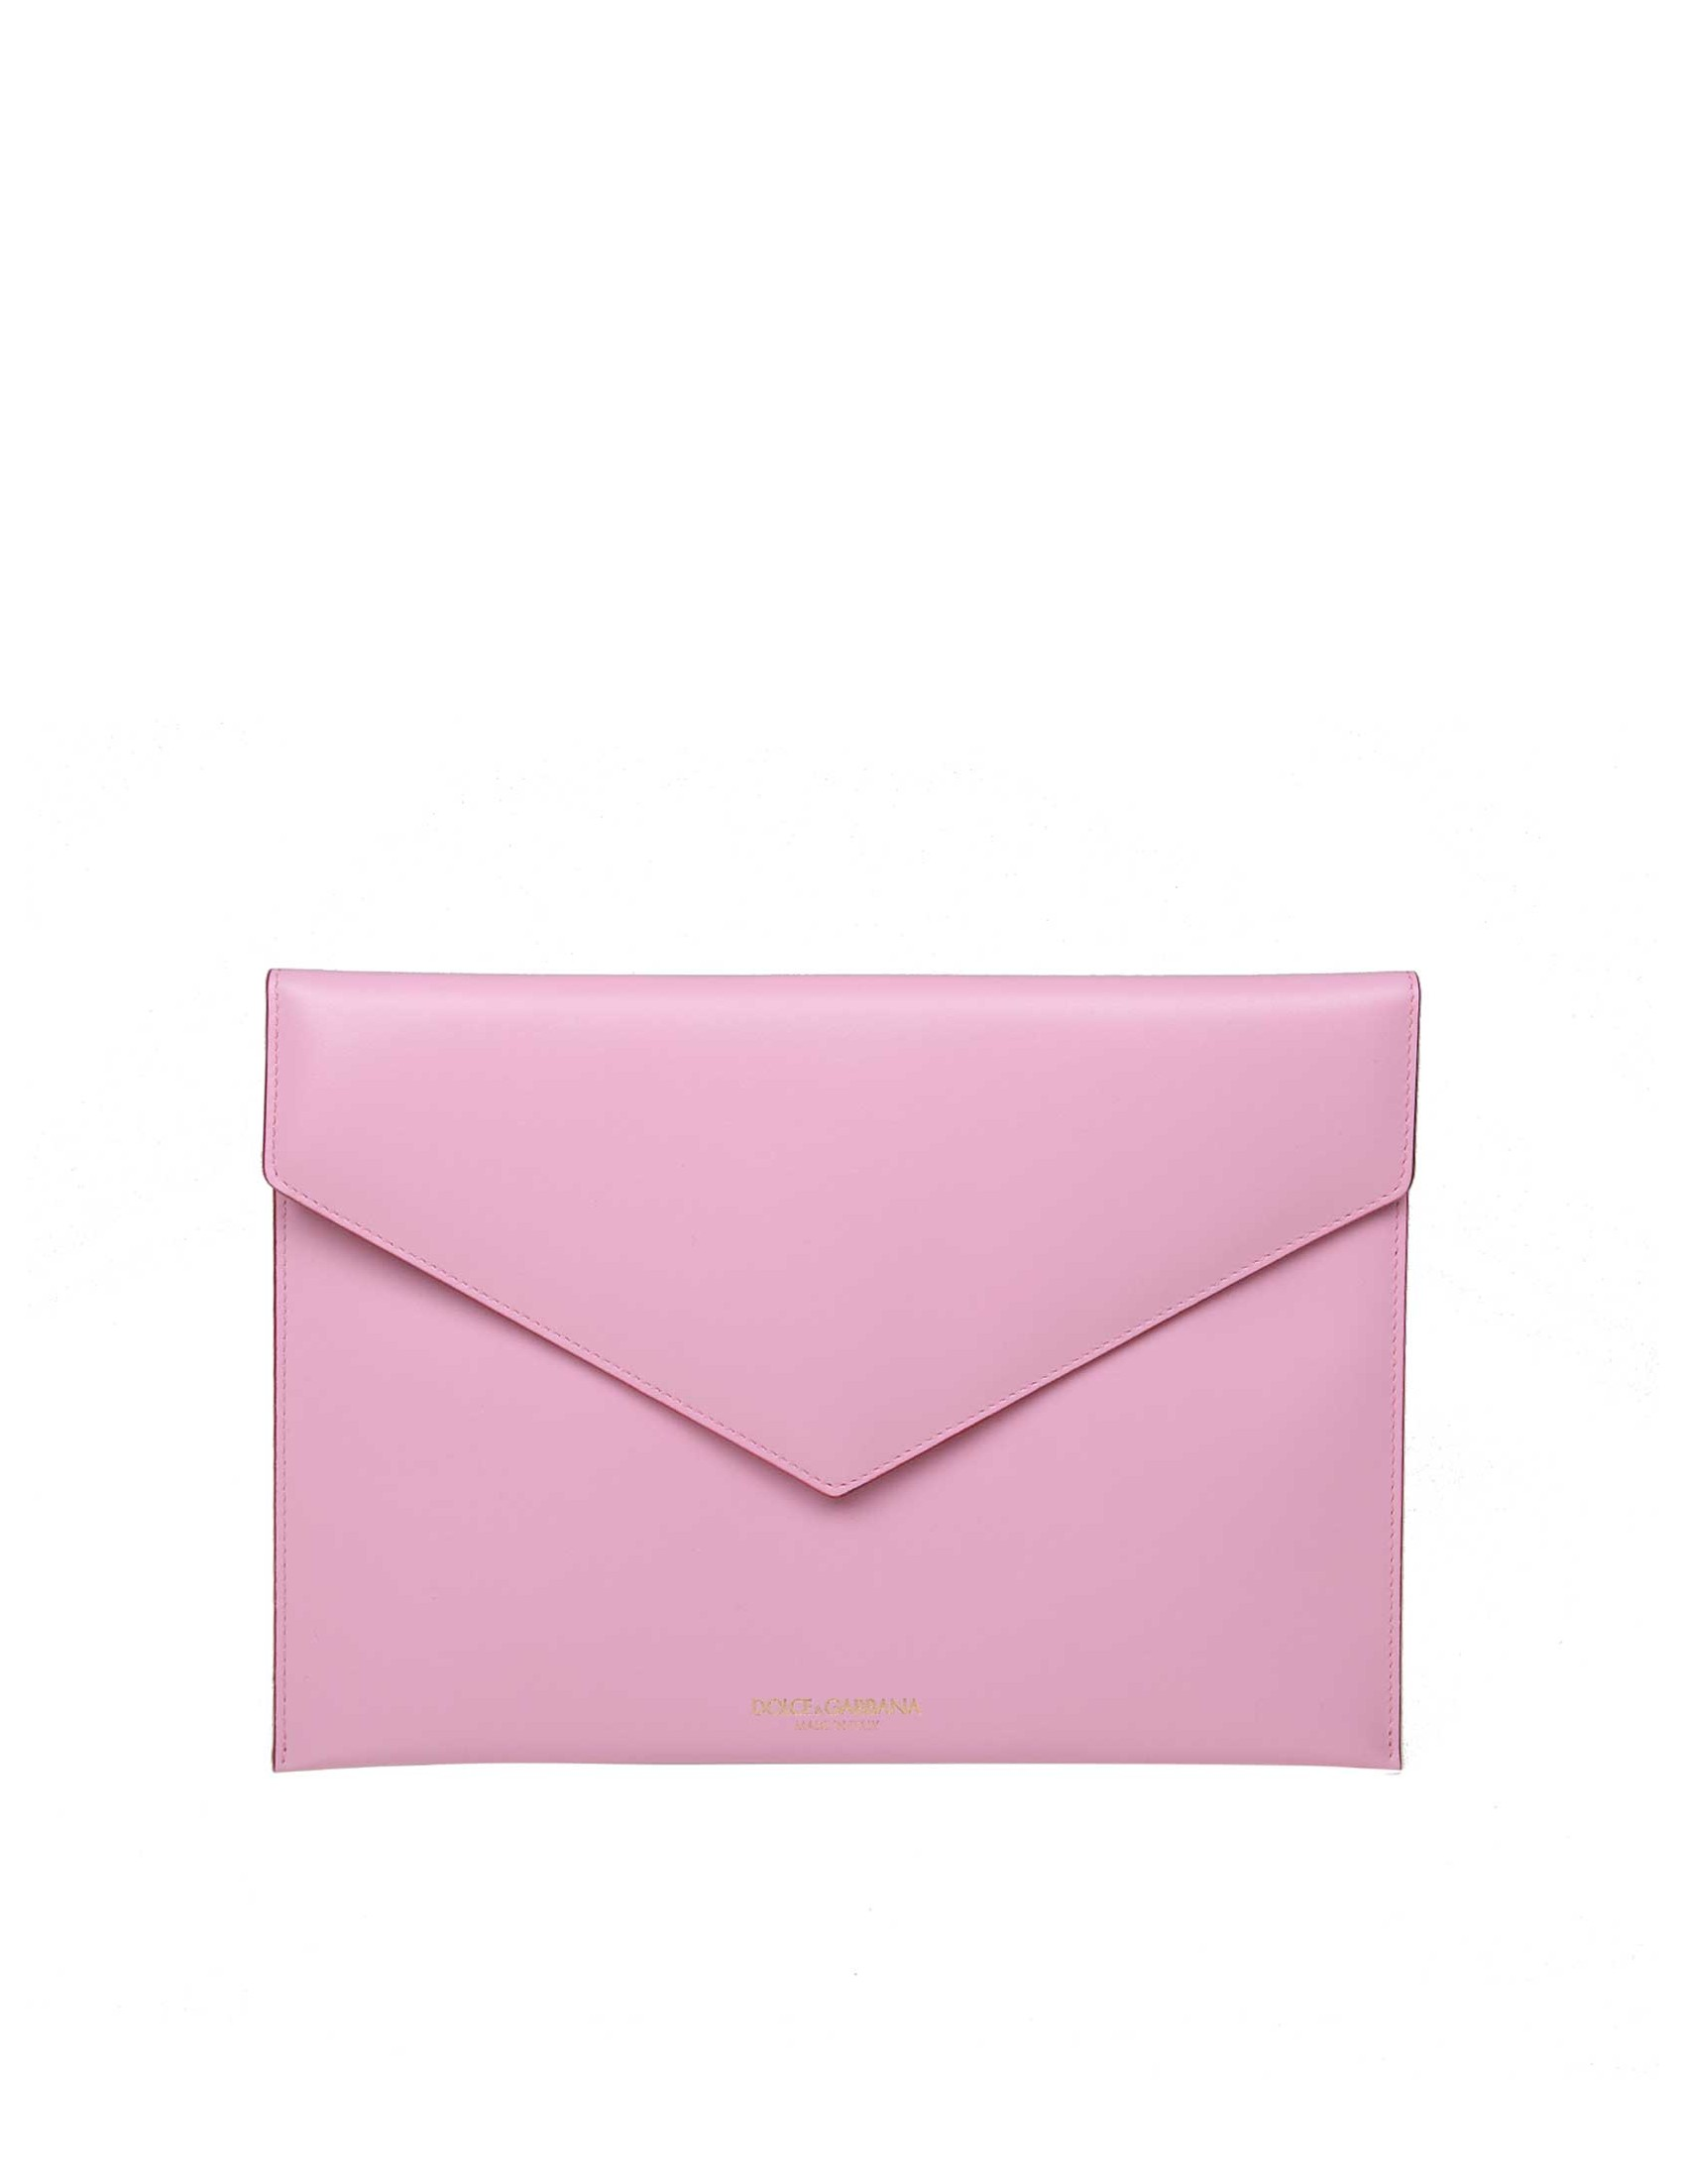 cheap for discount da186 c8ef8 DOLCE & GABBANA FLAT ENVELOPE IN SMOOTH CALF COLOR PINK